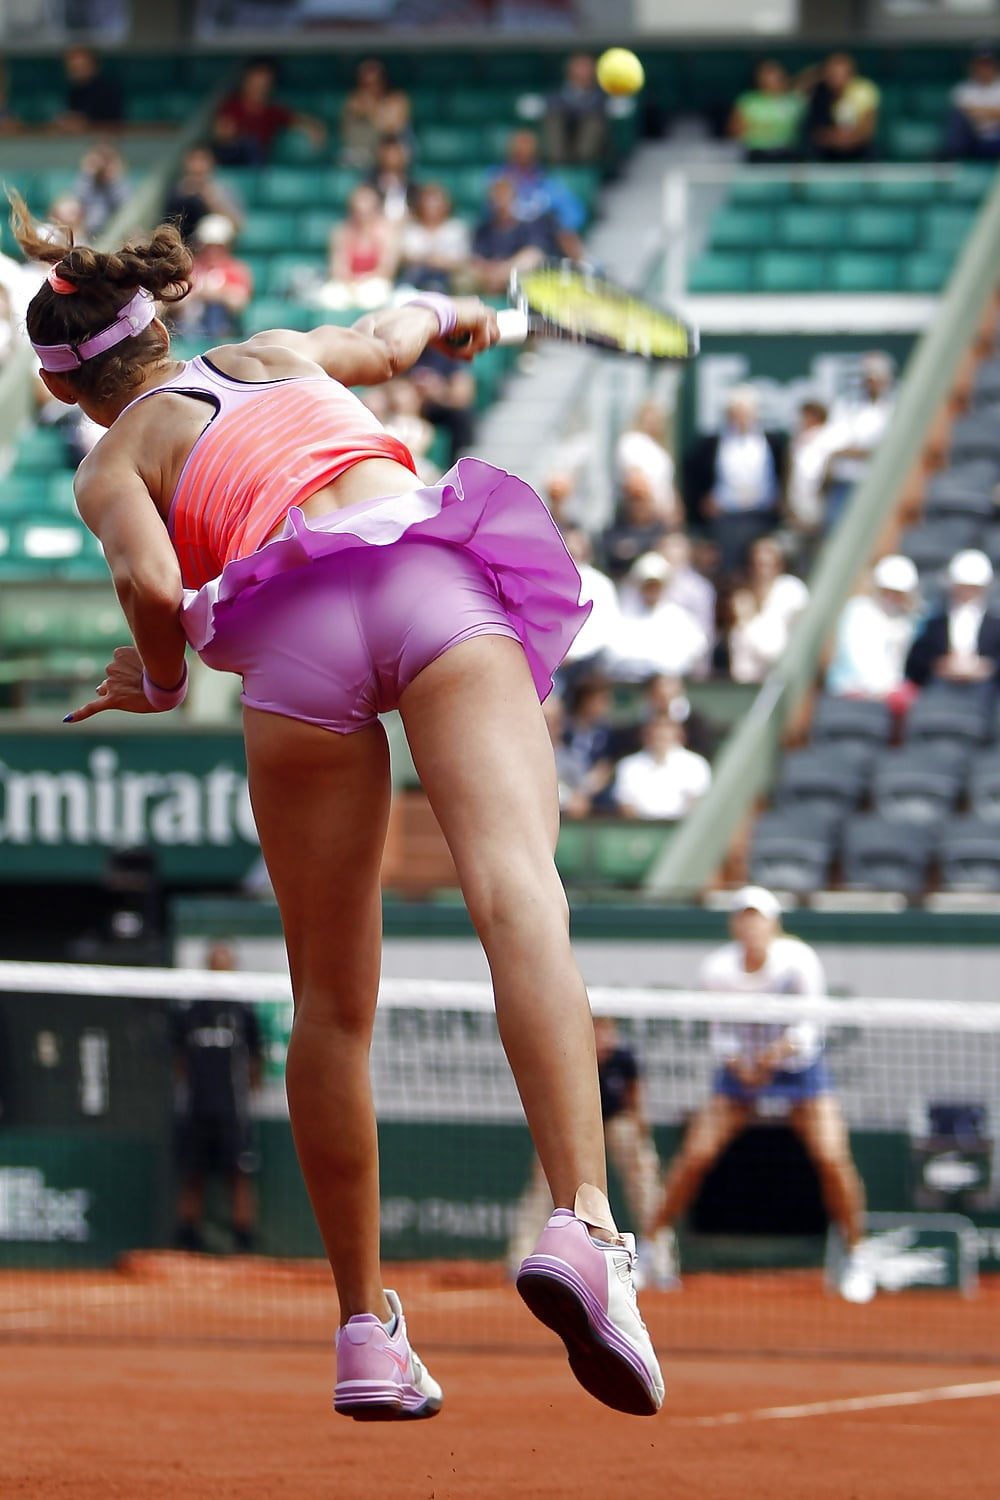 french-open-upskirt